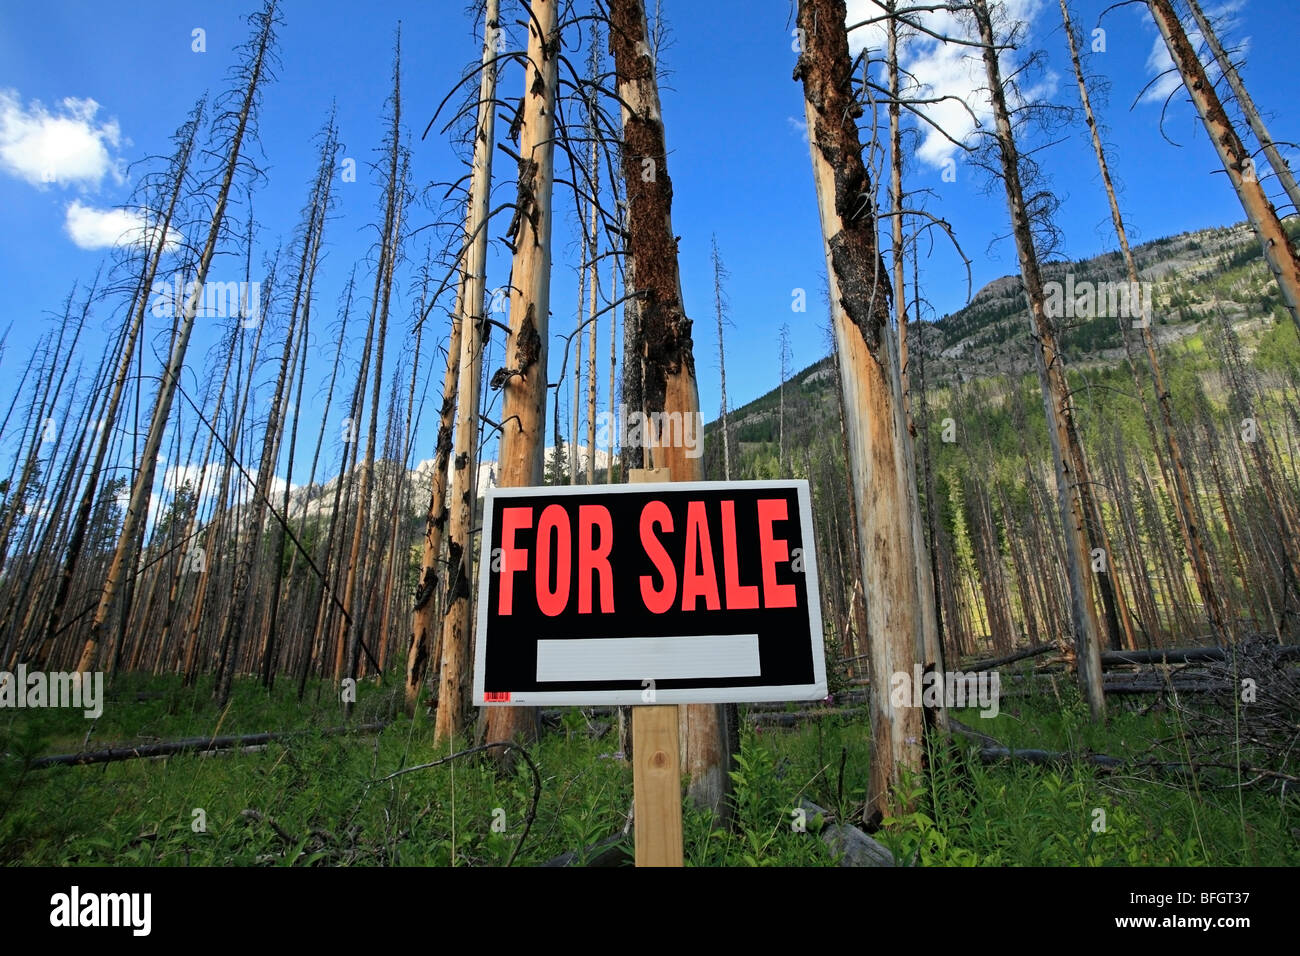 Arbres brûlés avec for sale sign. Le parc national Banff, Alberta, Canada Photo Stock